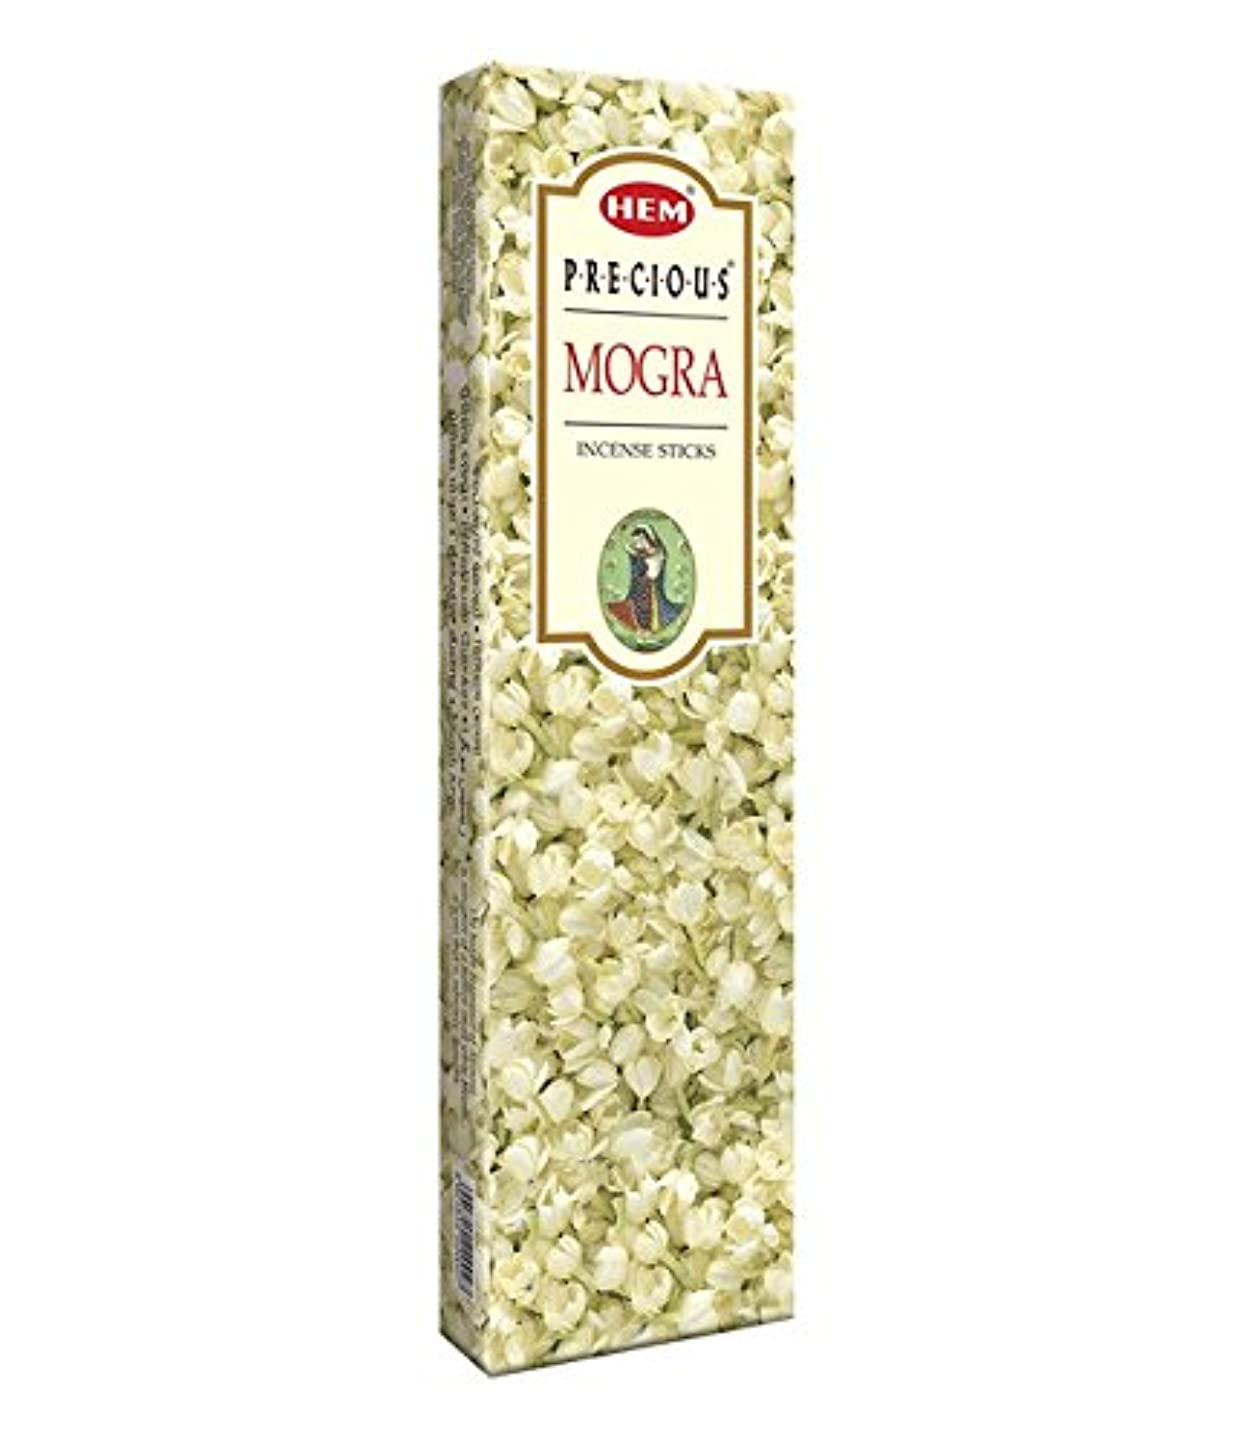 ジュースお手伝いさん前件Agarbathi Fragrance Hem Precious Mogra 100?g INCENSE STICKS